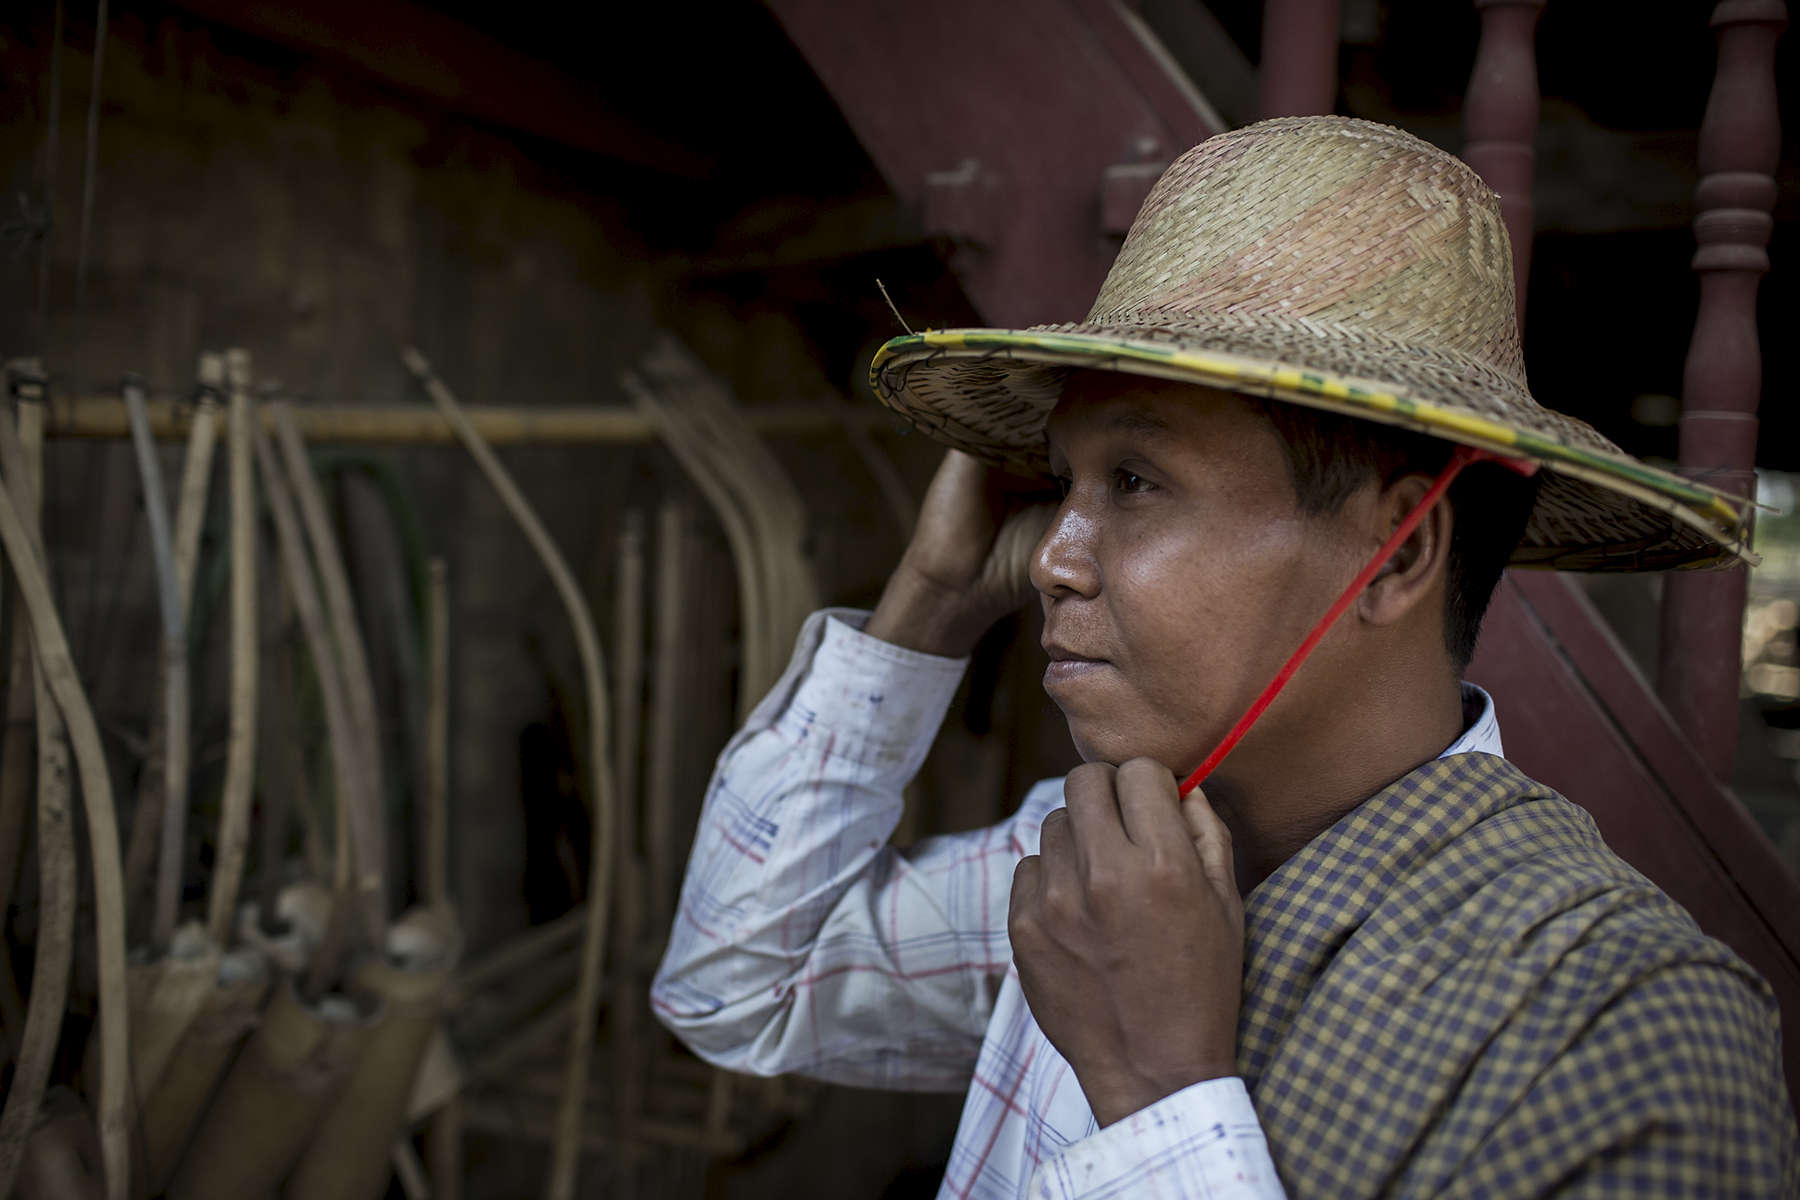 U Tin Naing demonstrates how he now dresses correctly when he prepares to go working on the farm. U Tin Naing, 41 years old, has two children and is a farmer. U Tin Naing had suffered from malaria in the past and believed it was from drinking dirty water. In Myanmar there are many misconceptions about how people contract Malaria, another commonly held belief is that eating bananas or papaya transmits the disease. A key part of this Australian Red Cross Community Based Health & Resilience project is working with local volunteers to educate community members and ensure sustainable behaviour change in regards to water and sanitation practices. A major part of the project is community education. After ensuring quality community education, the project then install physical hardware, taps, tanks, toilets etc.